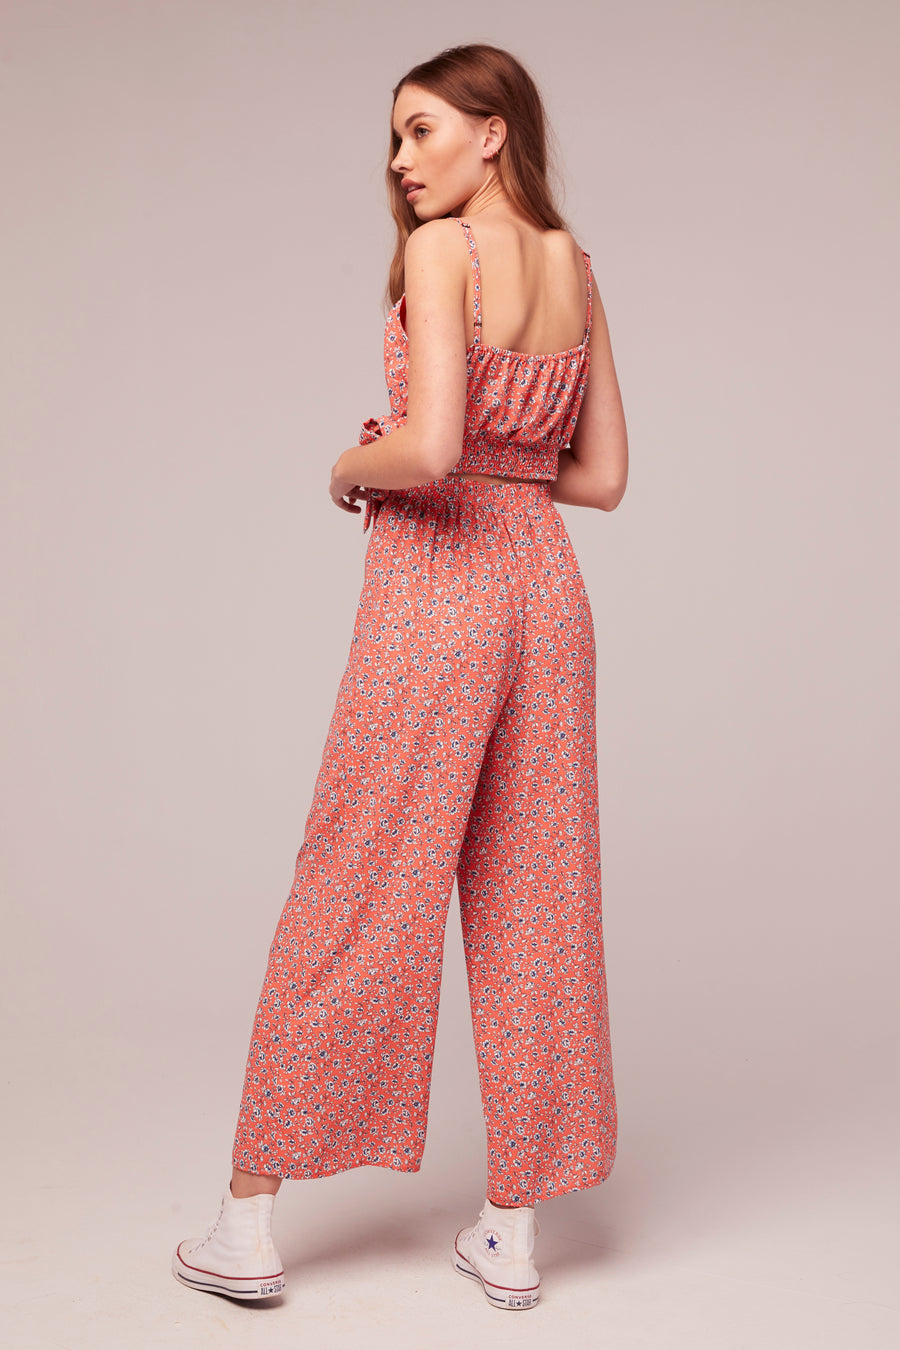 Sunflower Floral Print Pant Master